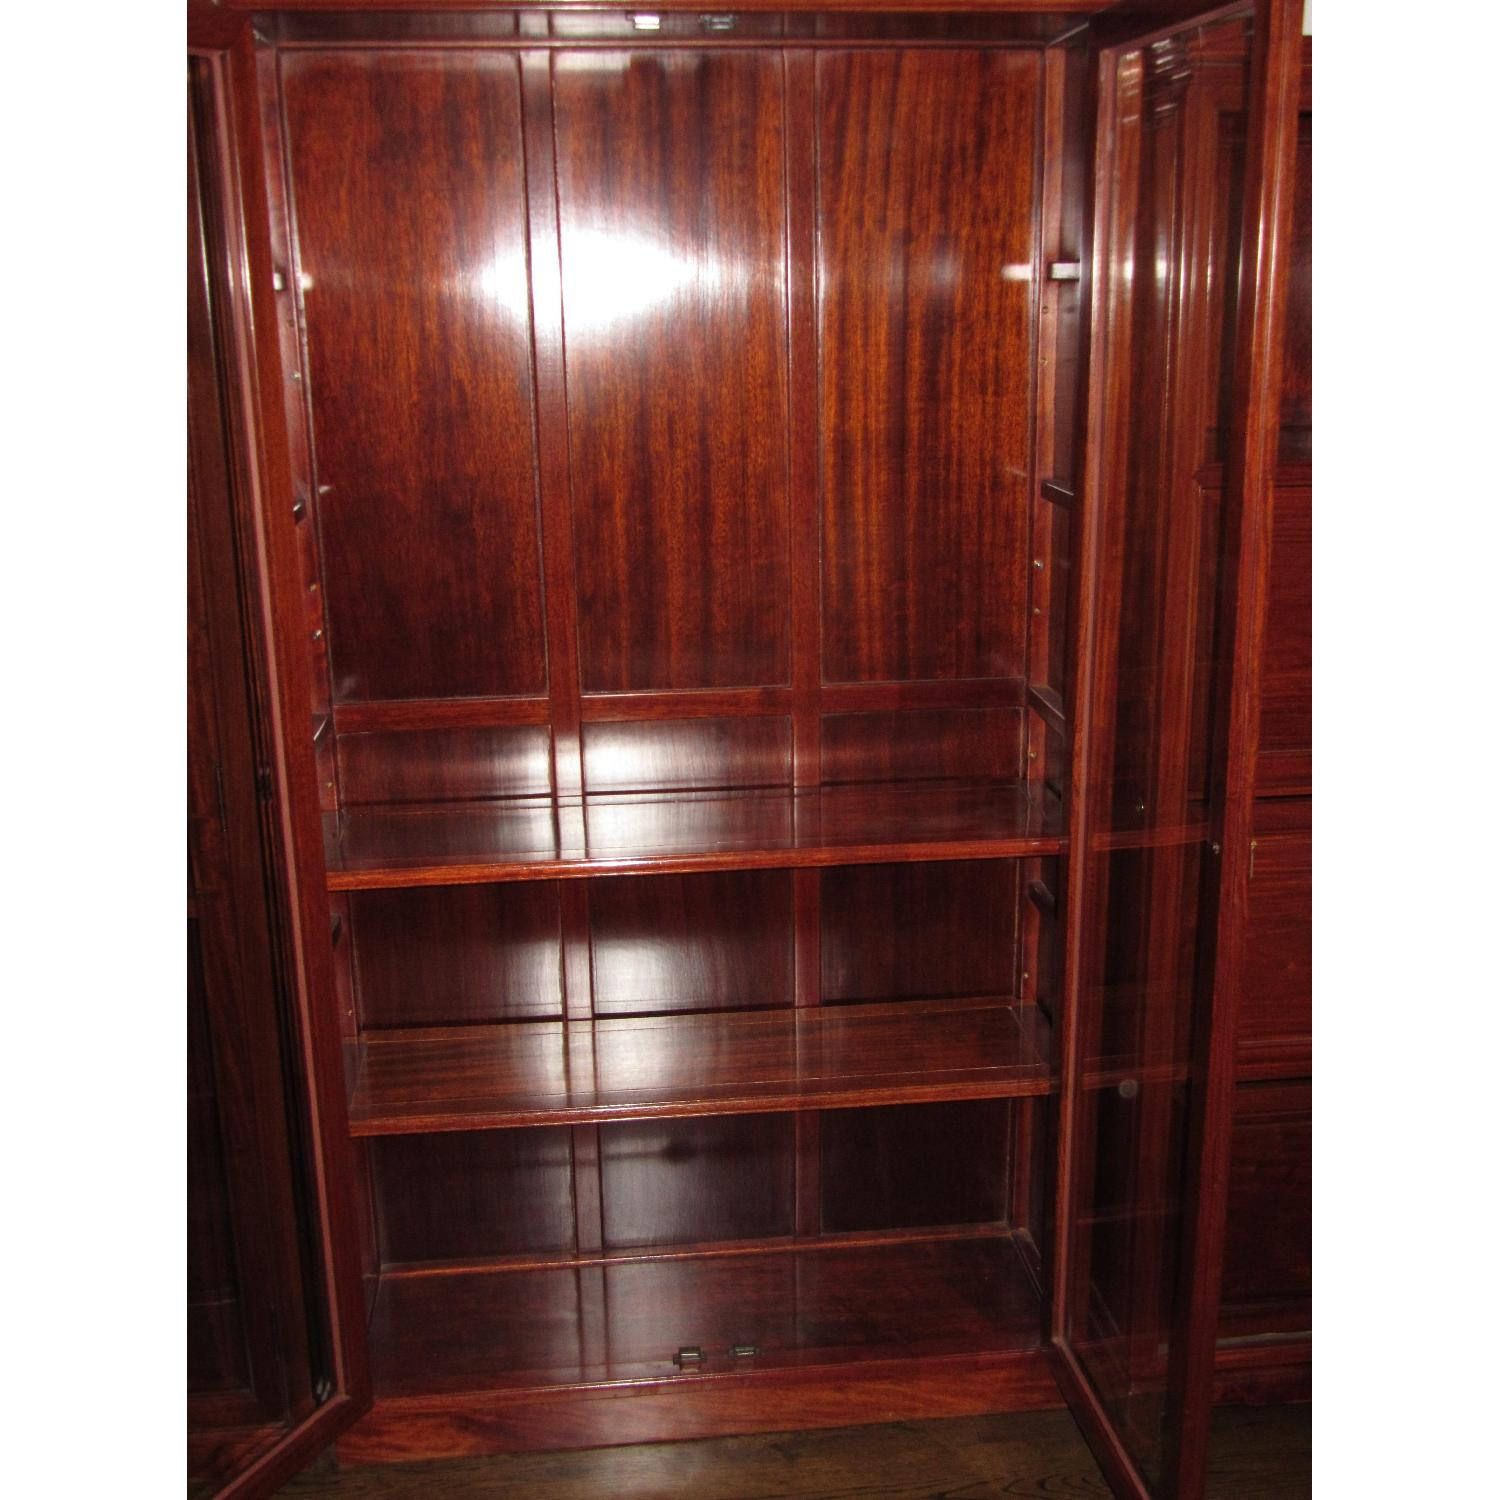 Rosewood Elm Glass Door Cabinets - 2 Available - image-3